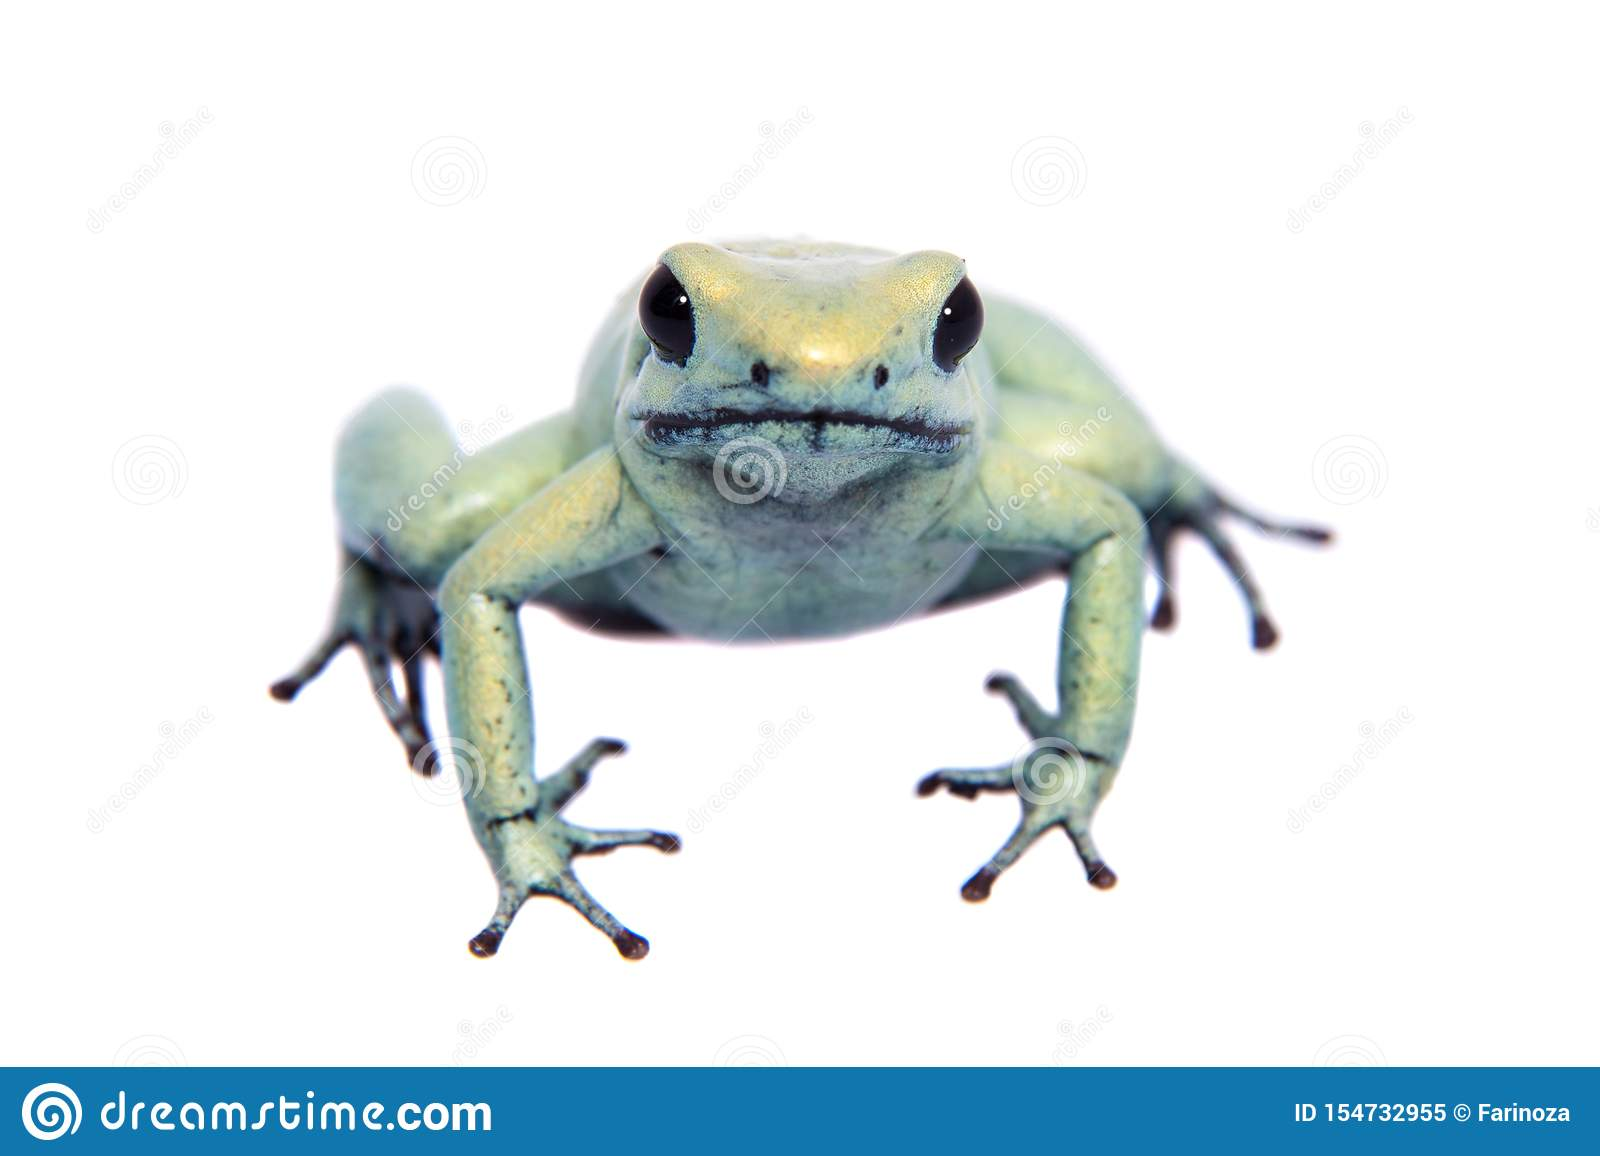 Mint golden poison frog on white background